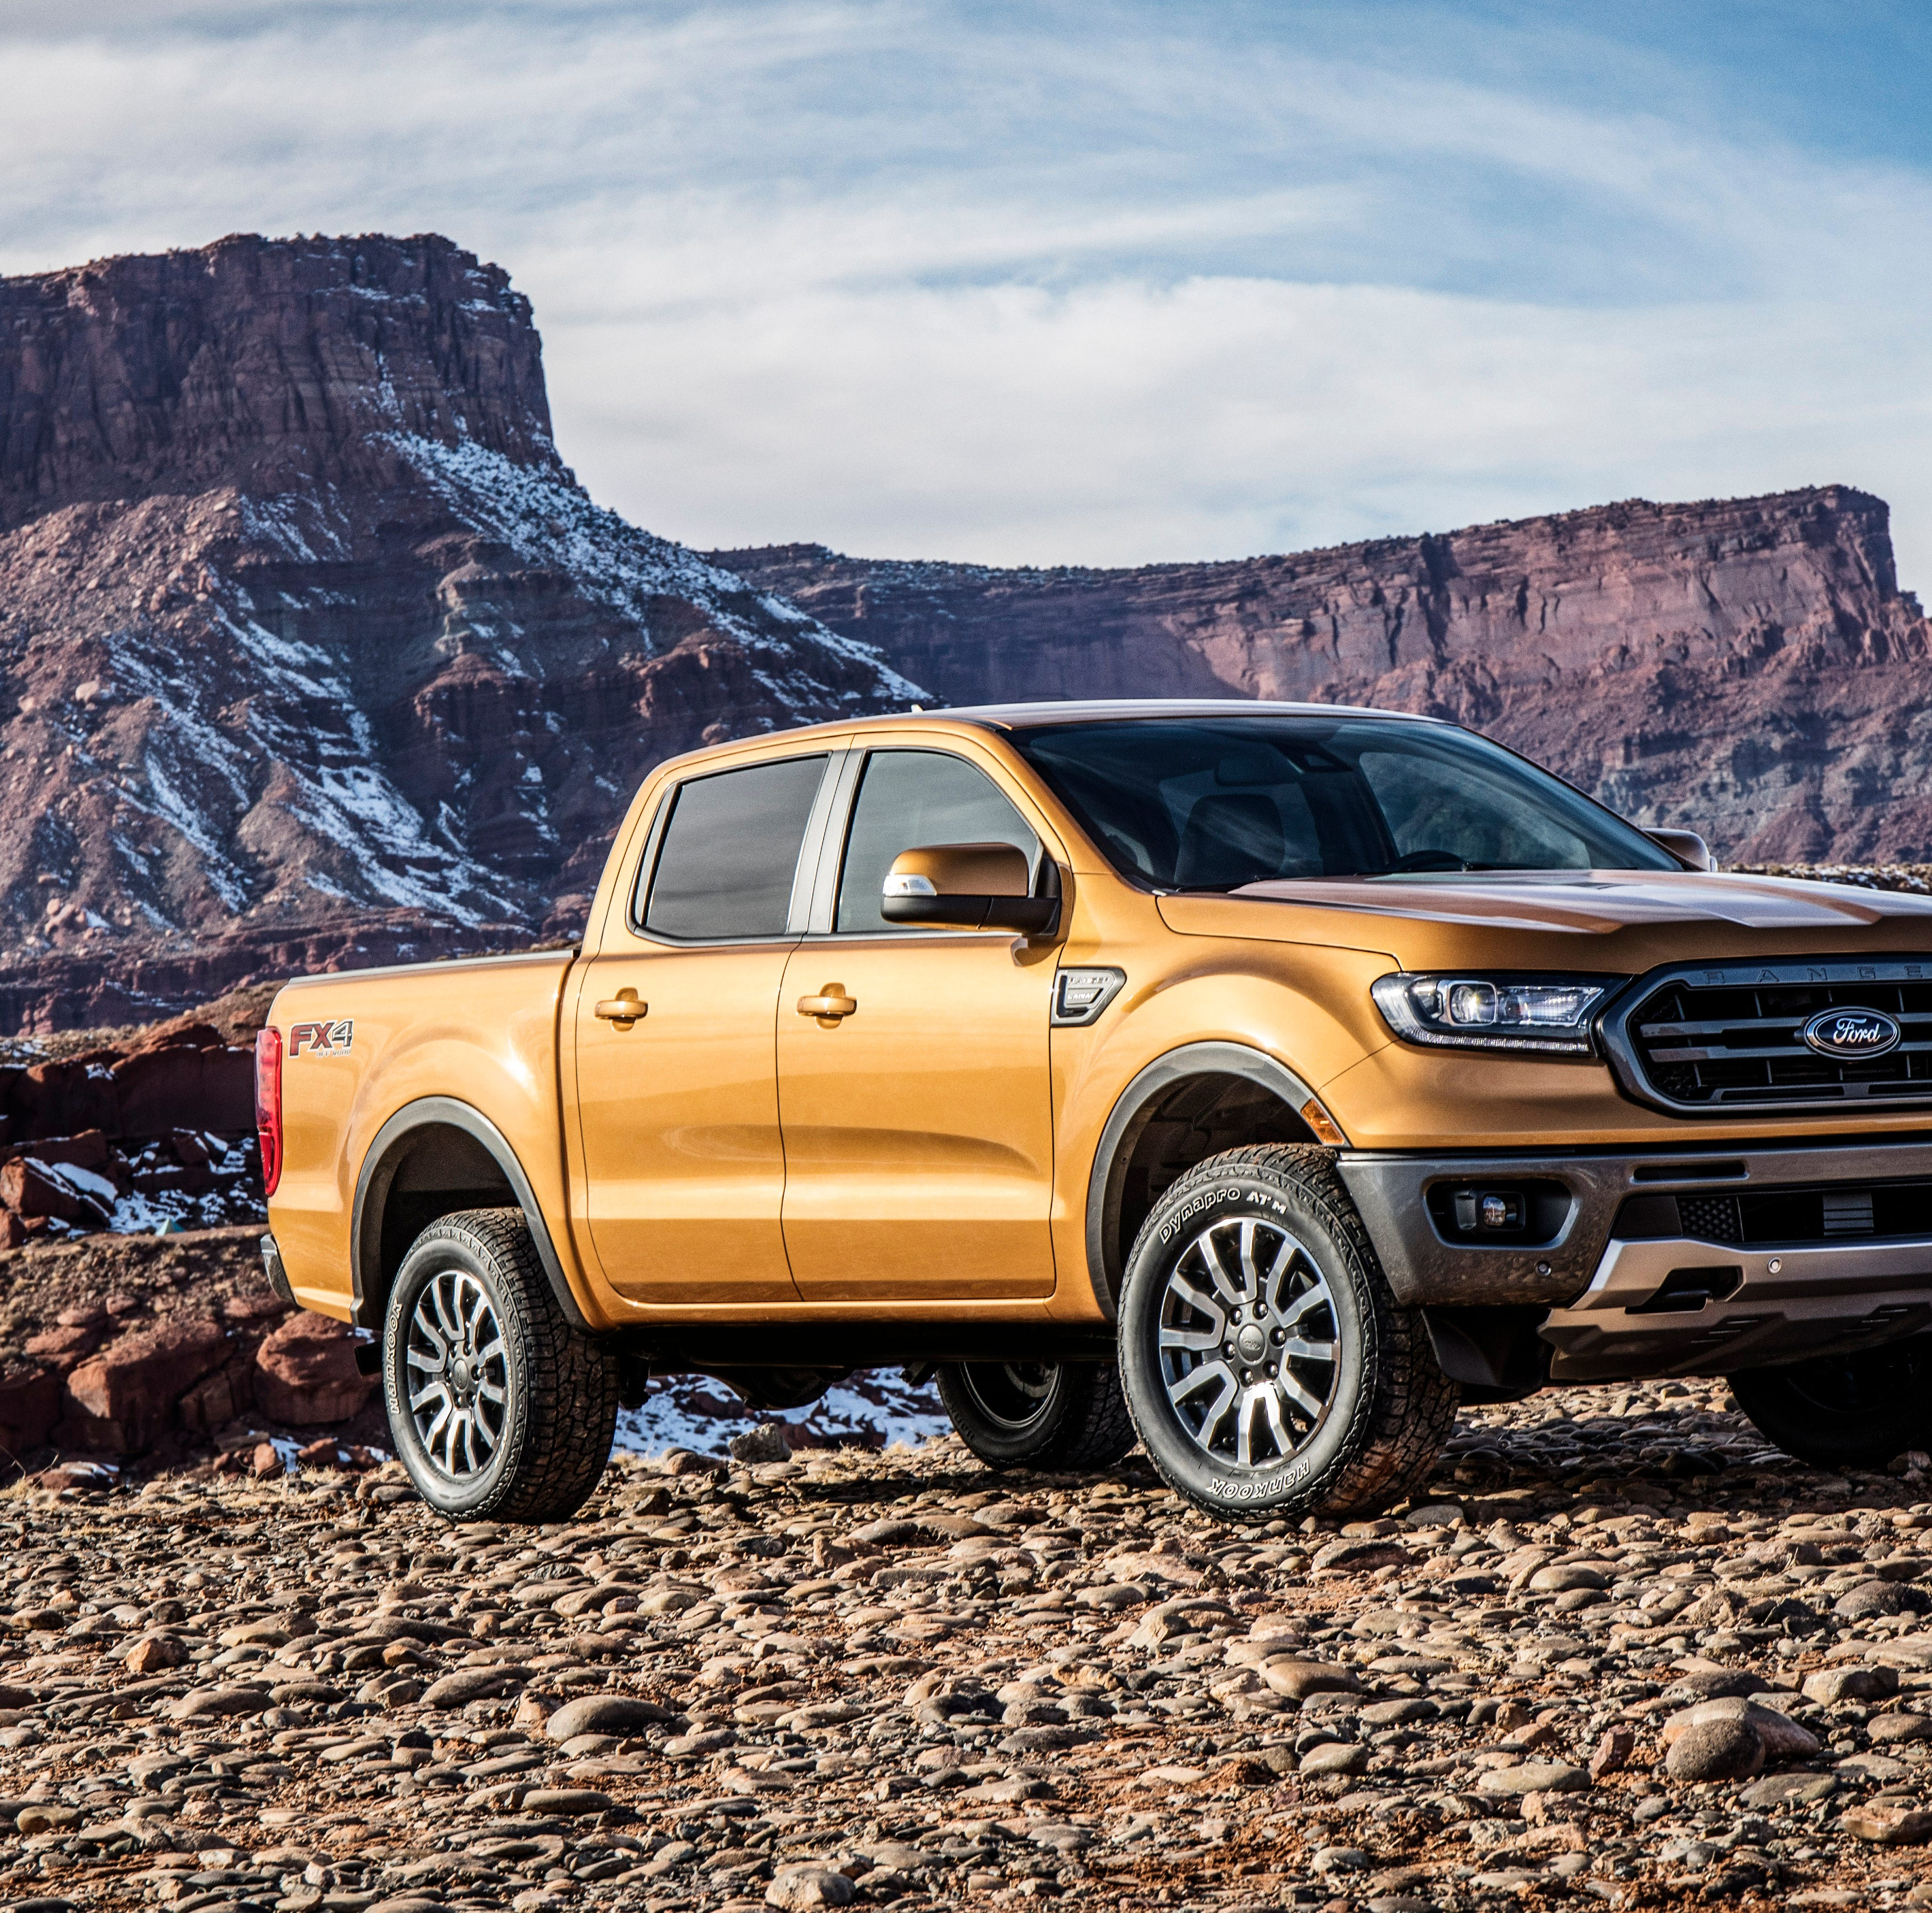 At $24,300, '19 Ford Ranger starts above Chevy Colorado, below Toyota Tacoma